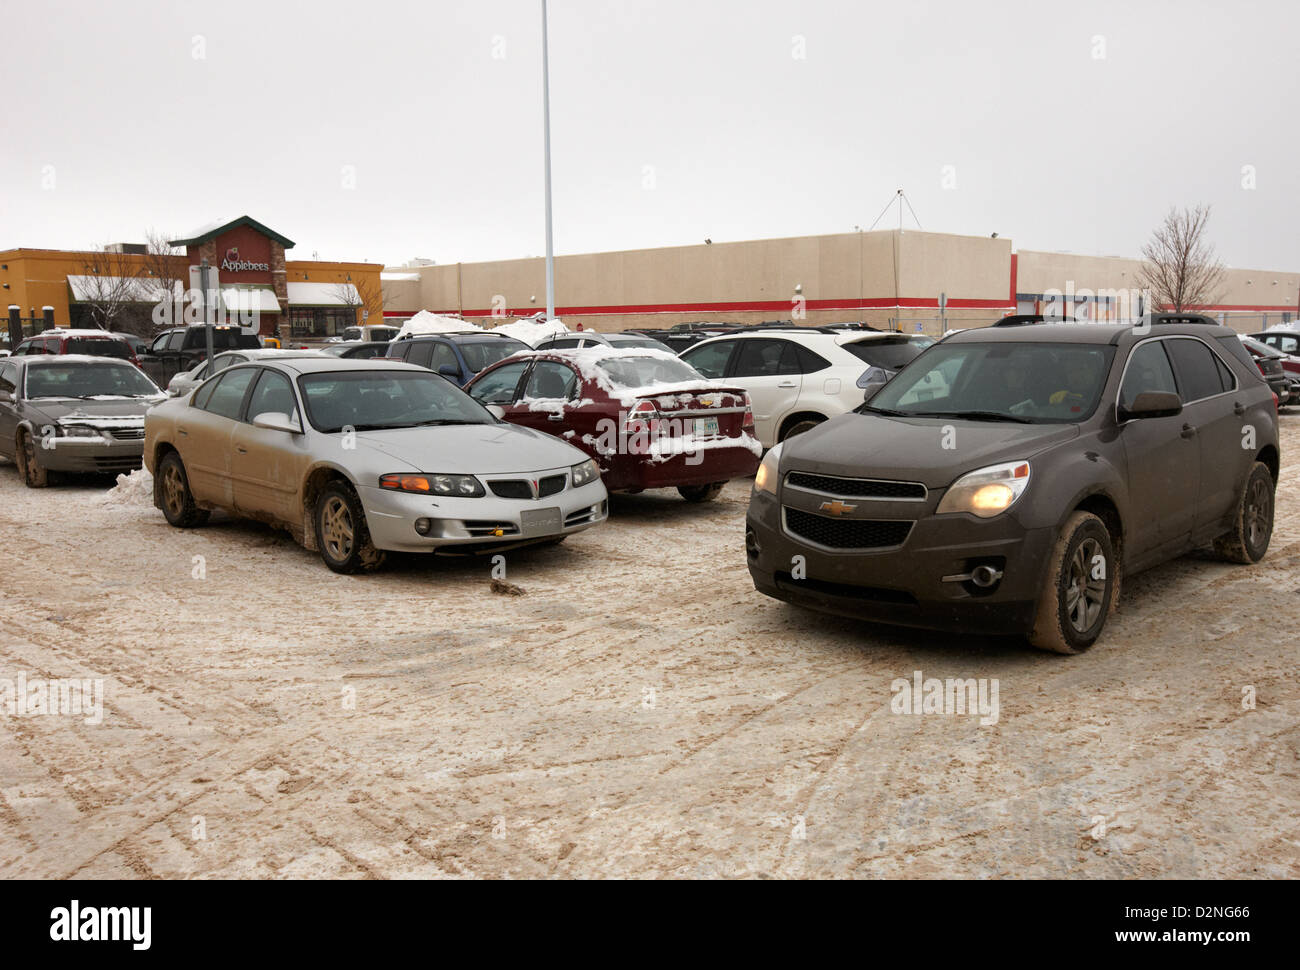 drivers trying to find parking place in snow covered outdoor parking lot Regina Saskatchewan Canada - Stock Image